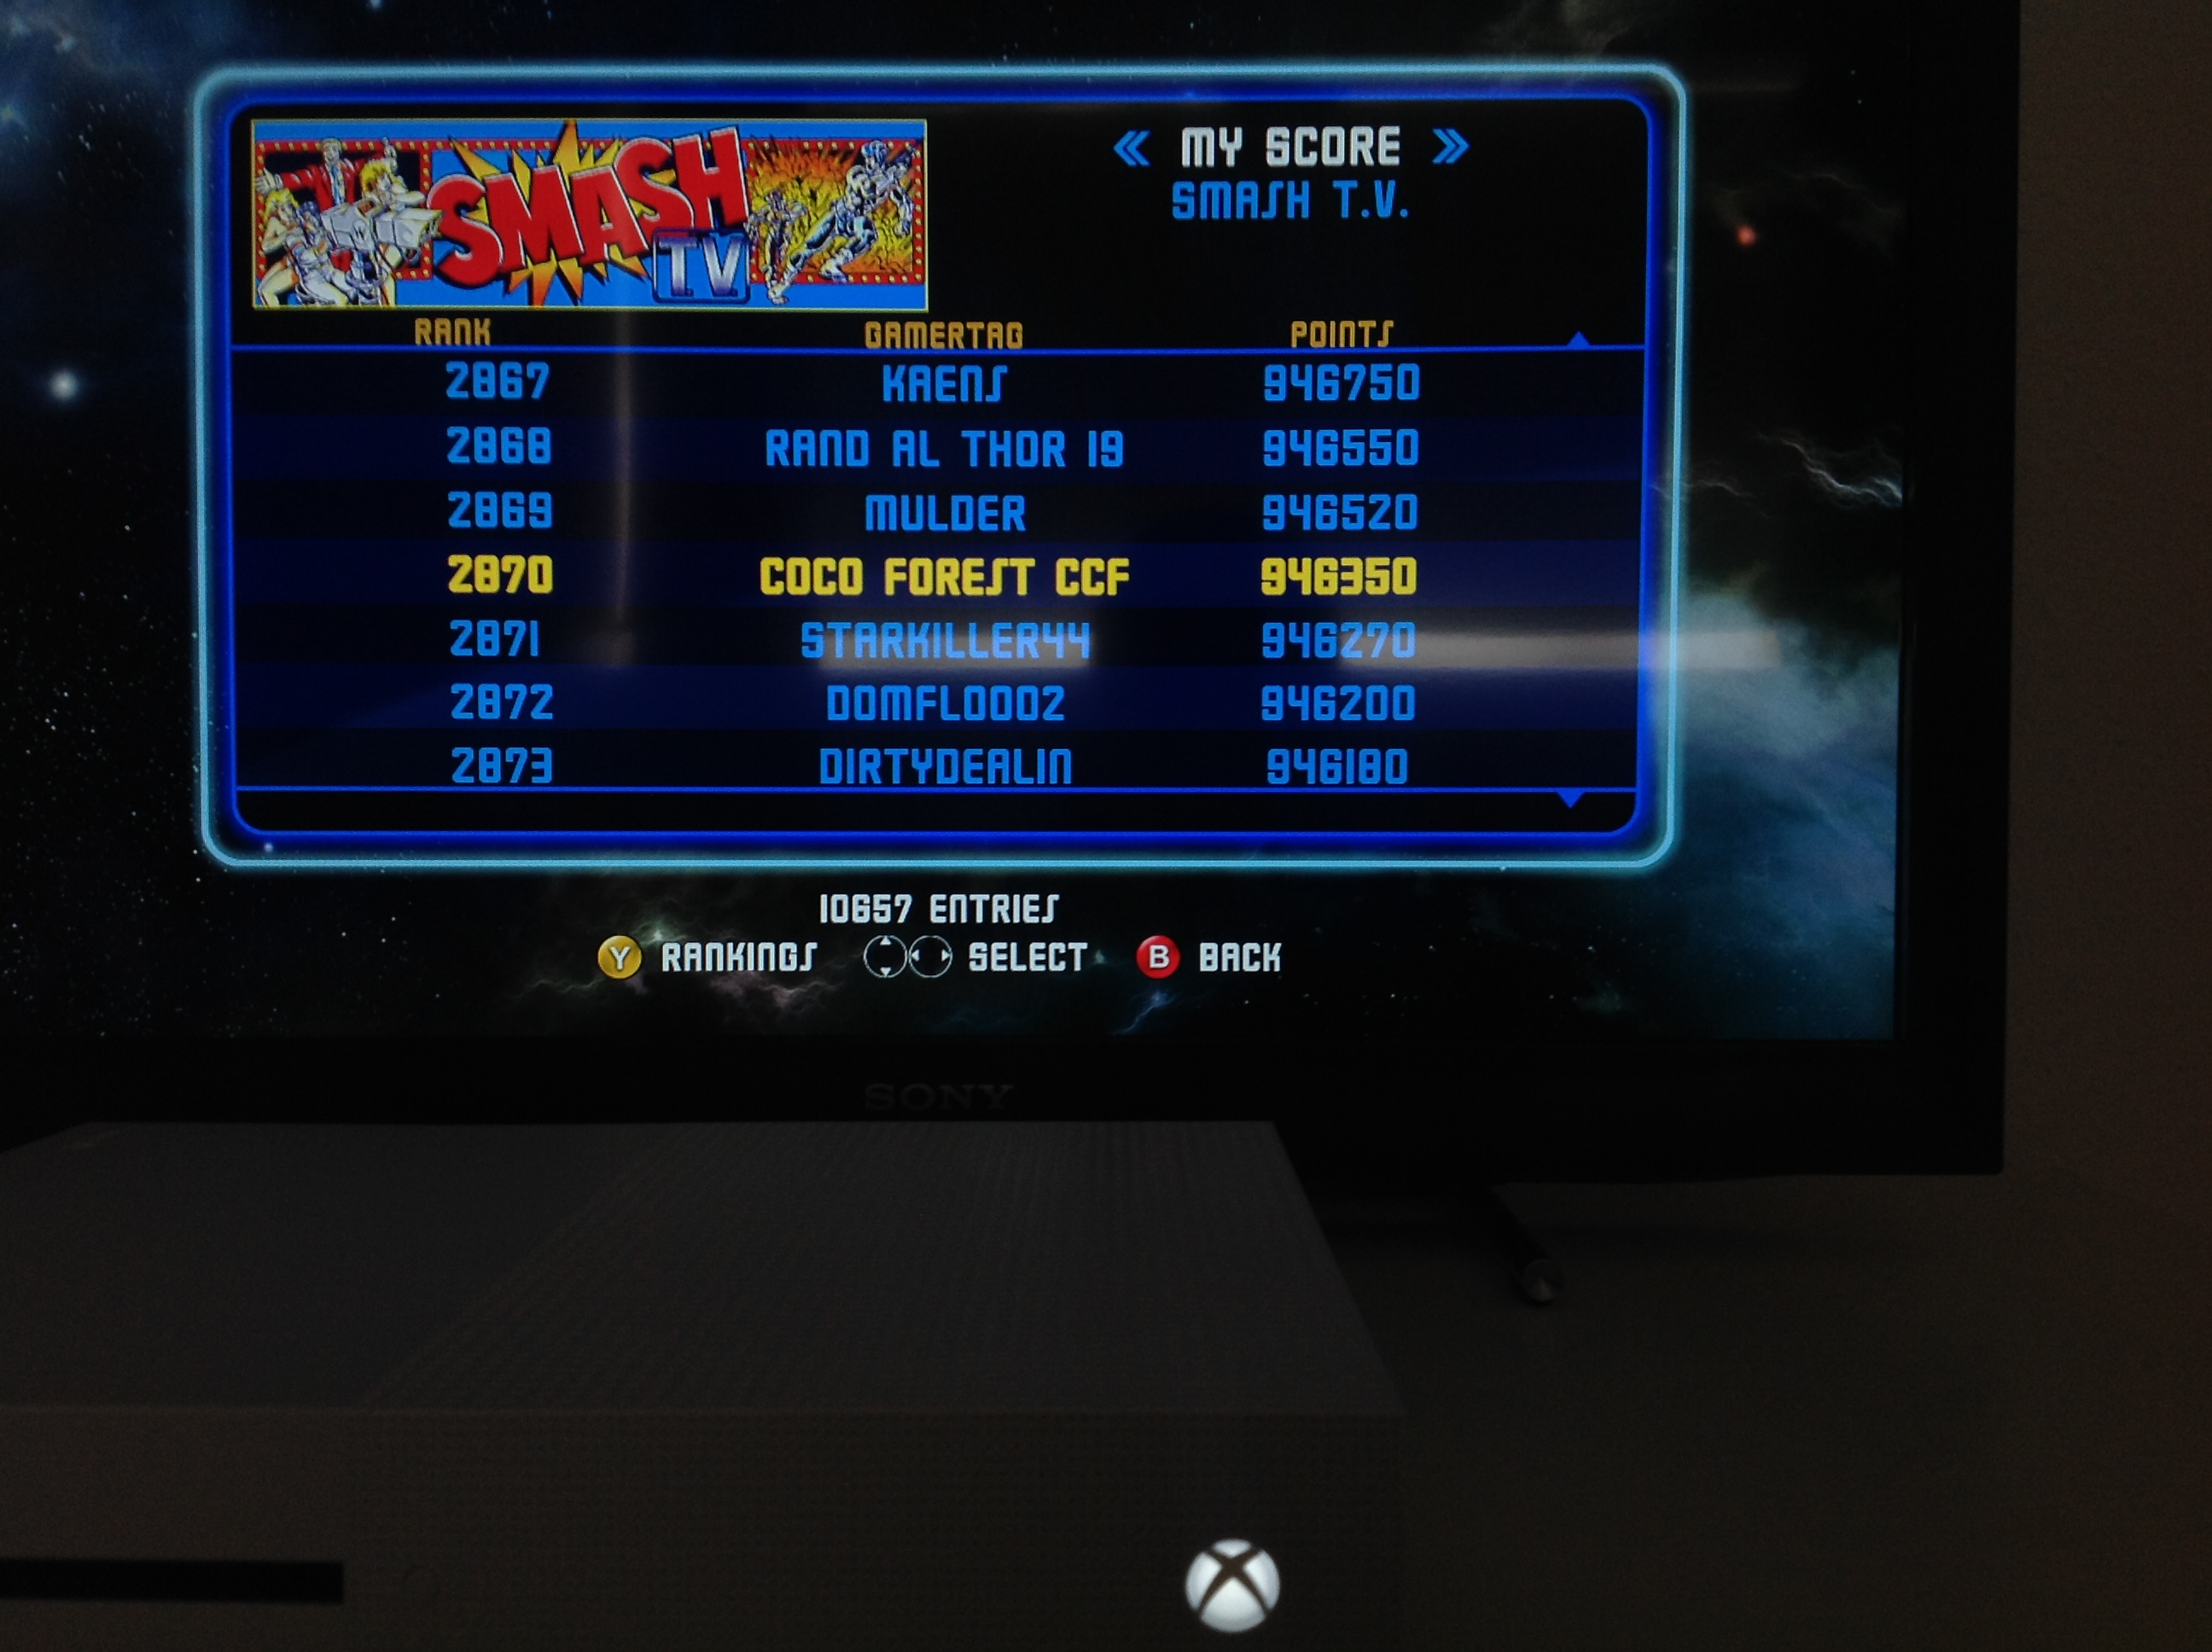 CoCoForest: Midway Arcade Origins: Smash TV (Xbox 360) 946,350 points on 2019-05-31 03:02:19